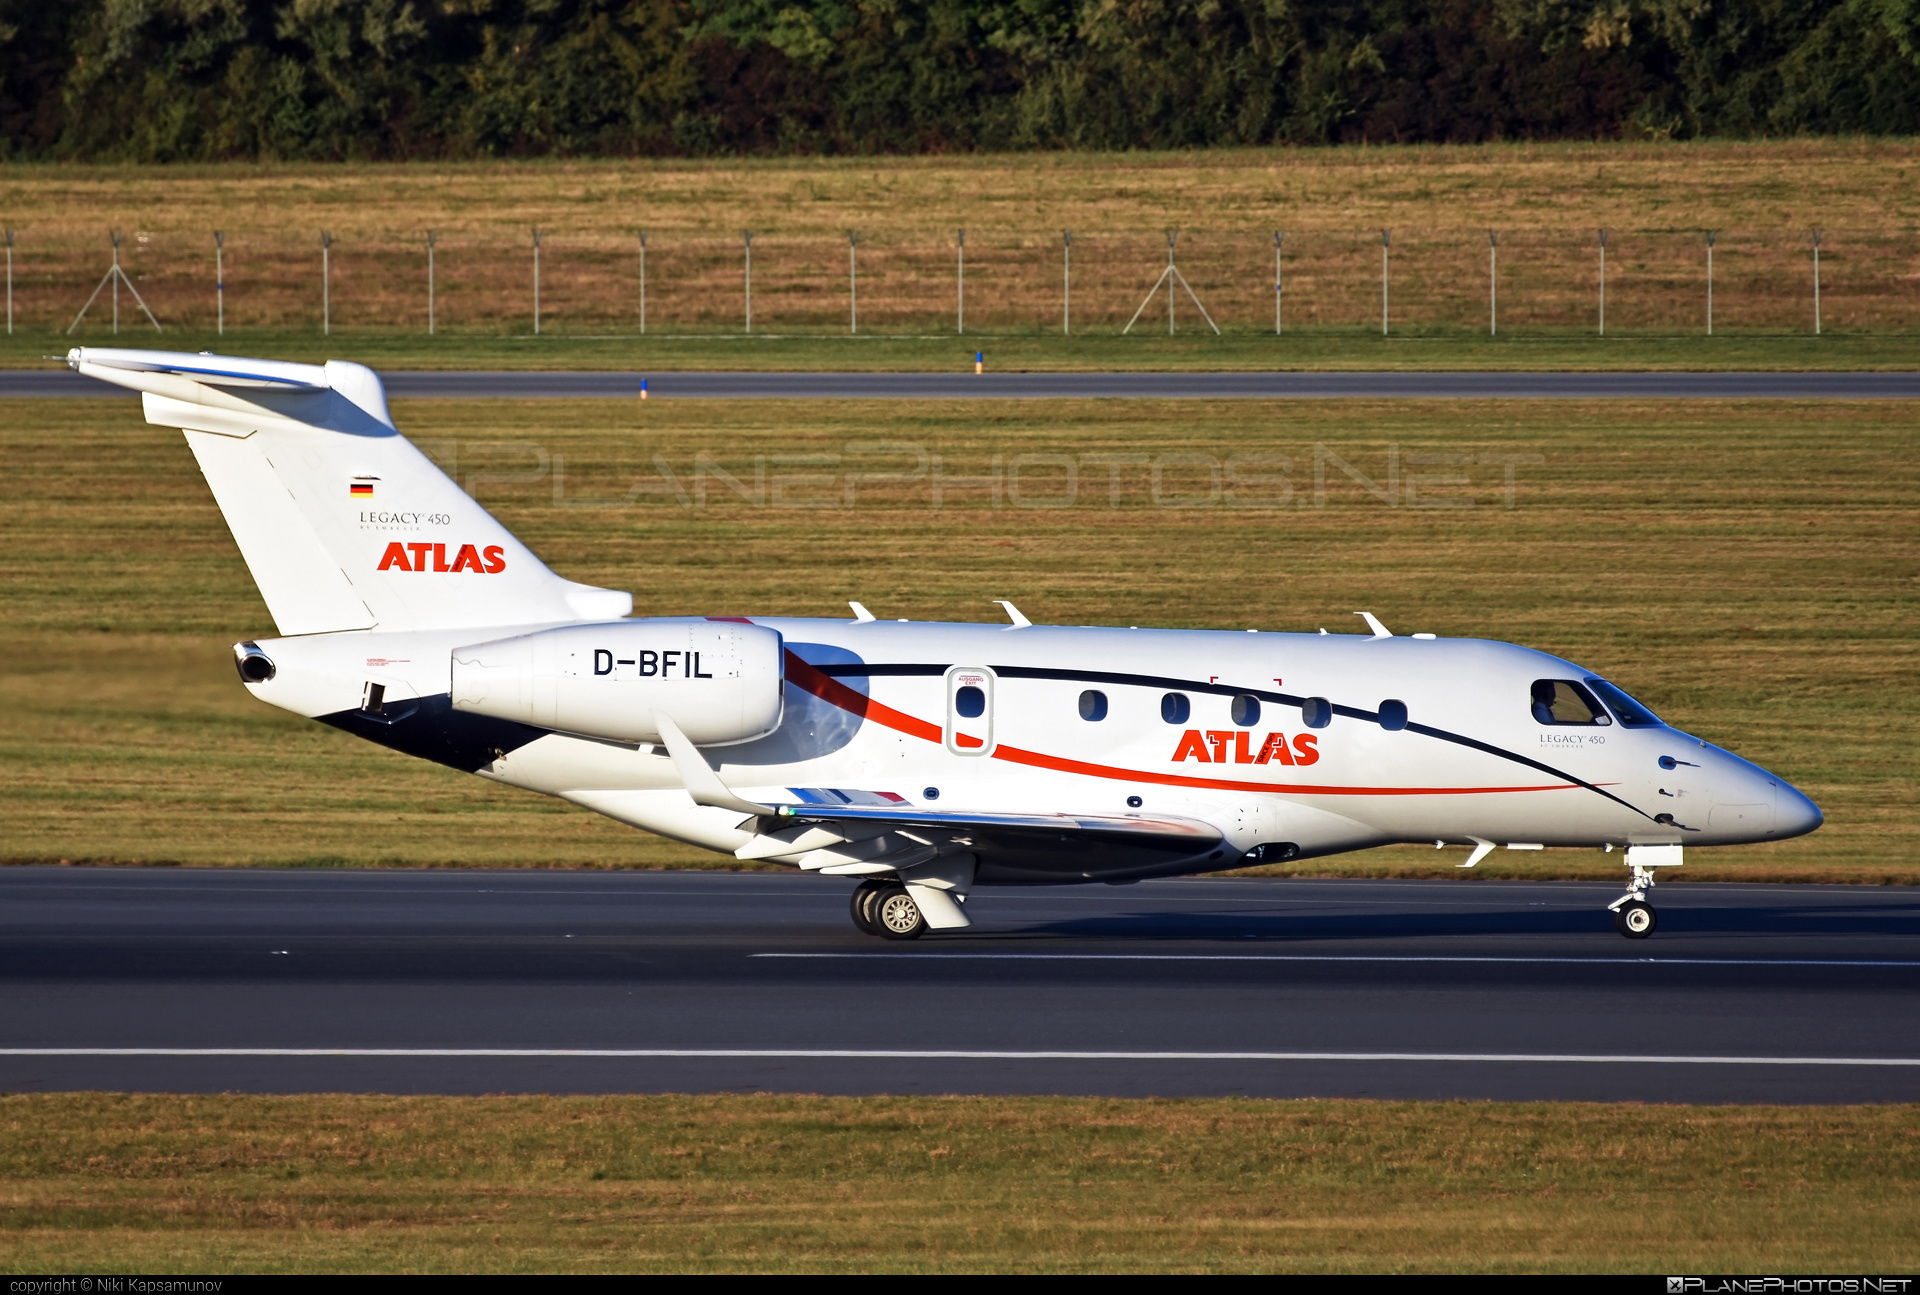 Embraer EMB-545 Legacy 450 - D-BFIL operated by Atlas Air Service #emb545 #embraer #embraer545 #embraerlegacy #legacy450